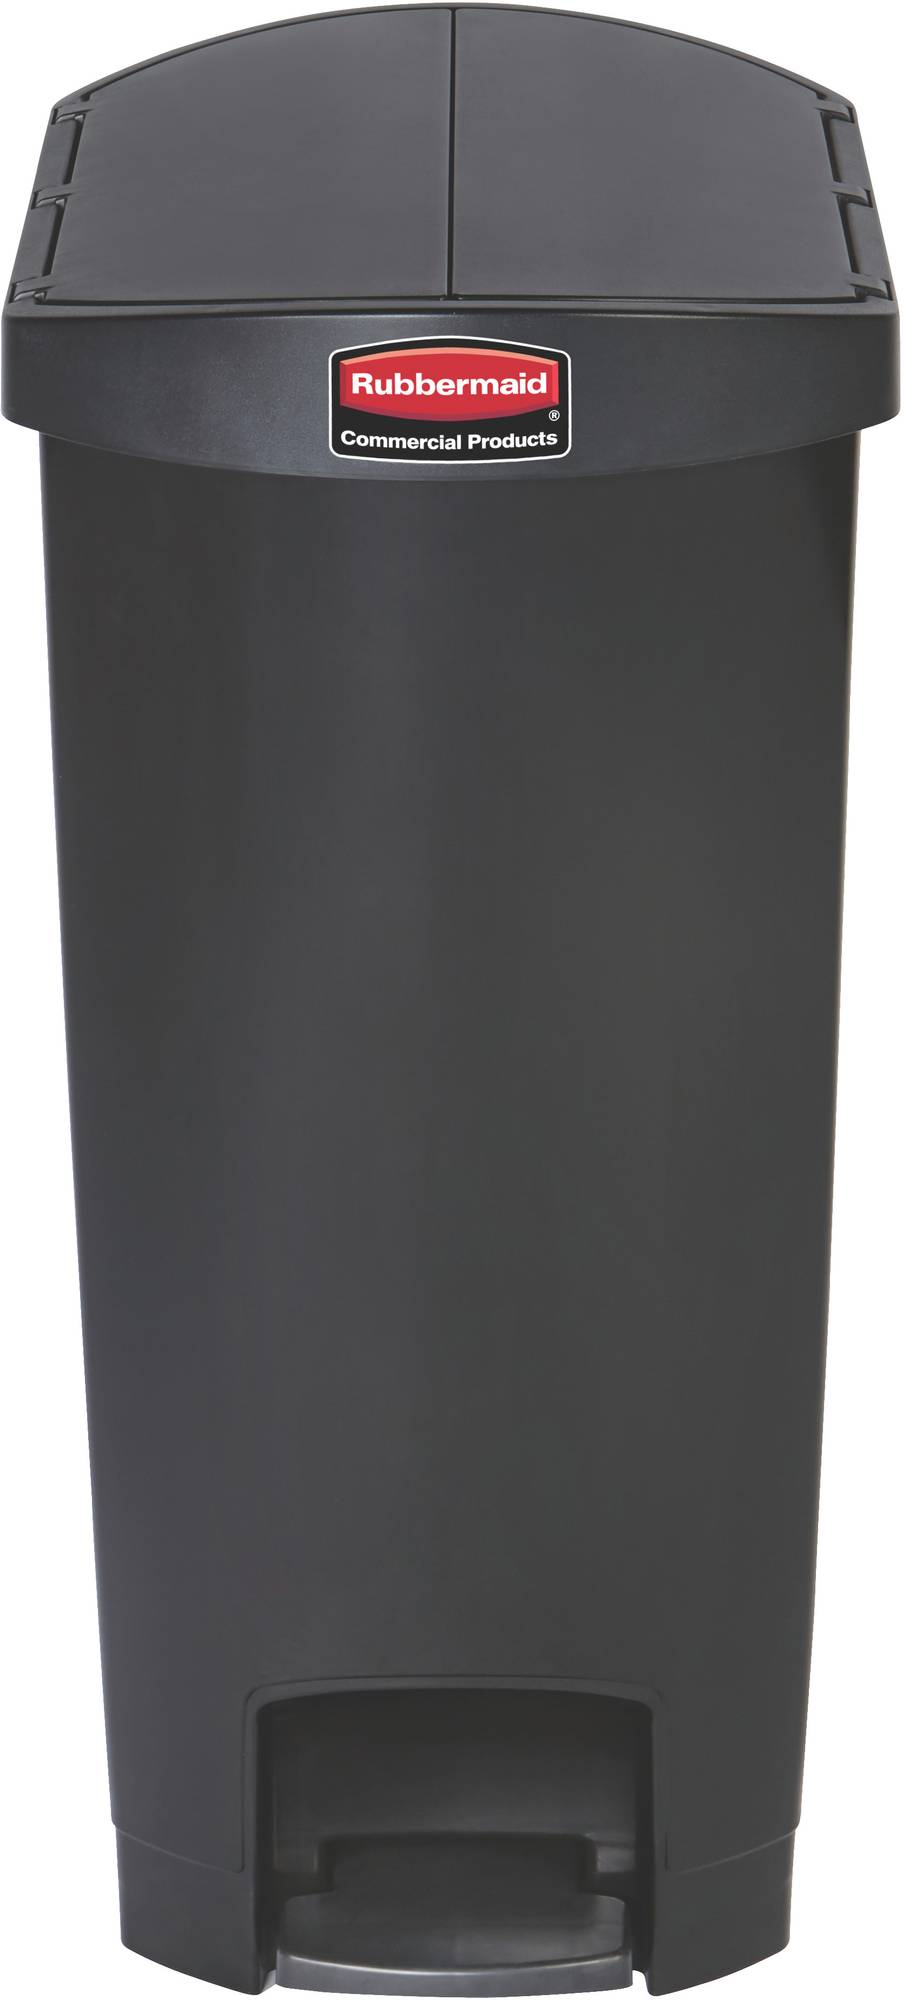 Rubbermaid Slim Jim Step On Container End Step mit 50 l Füllmenge in Schwarz, geteilter Deckel